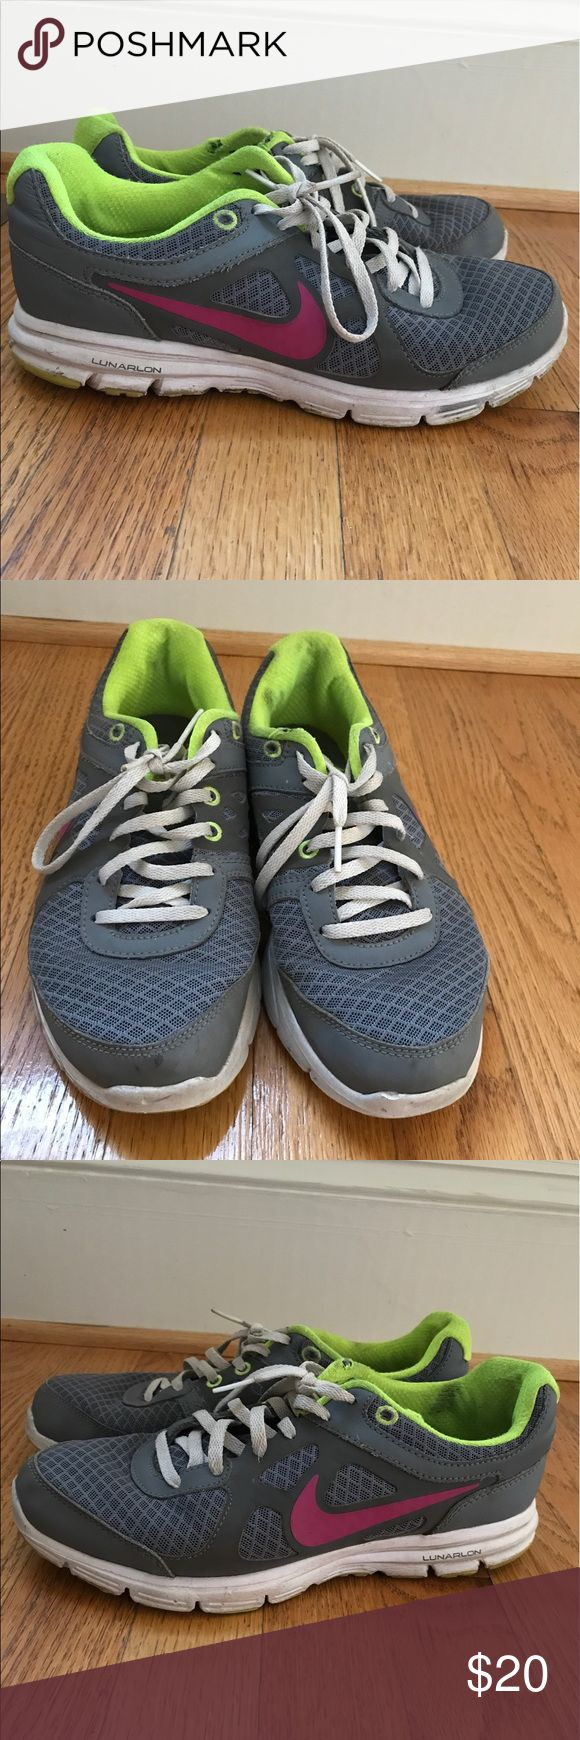 Nike Sneakers Nike lunarlon women's sneakers. Gently used. Size 7.5 Nike Shoes Athletic Shoes